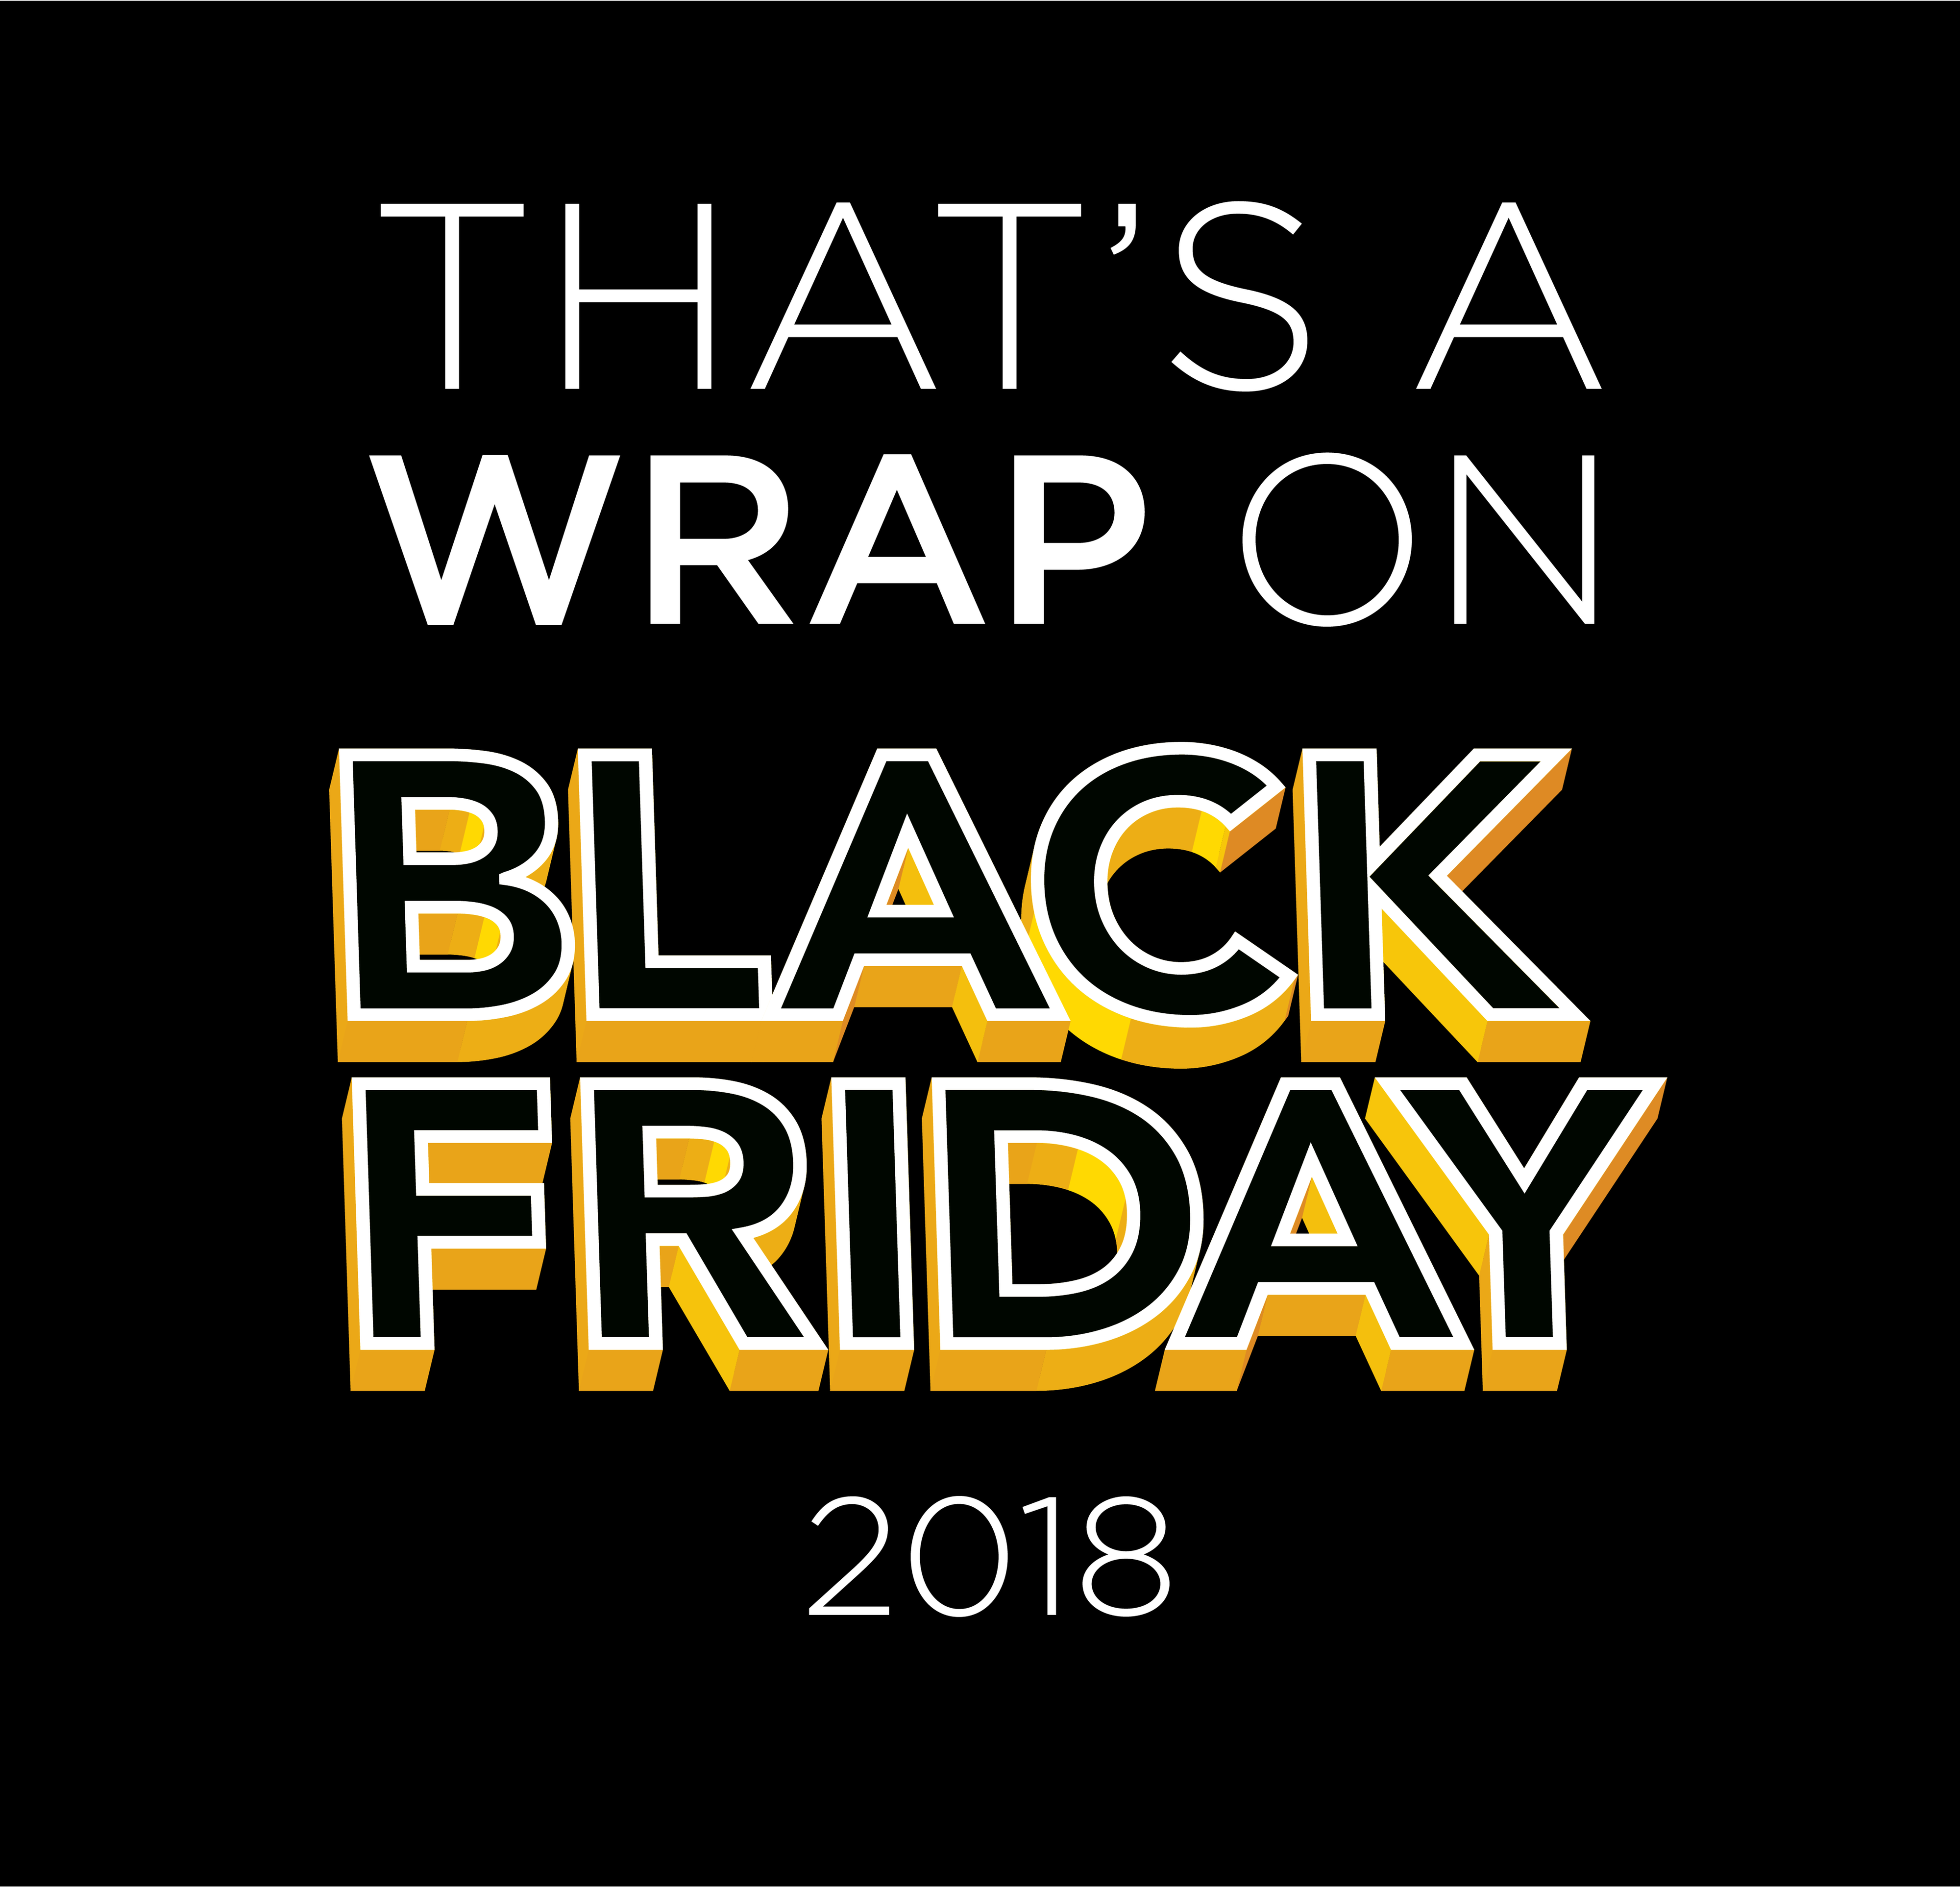 That's a Wrap on Blackfriday 2018